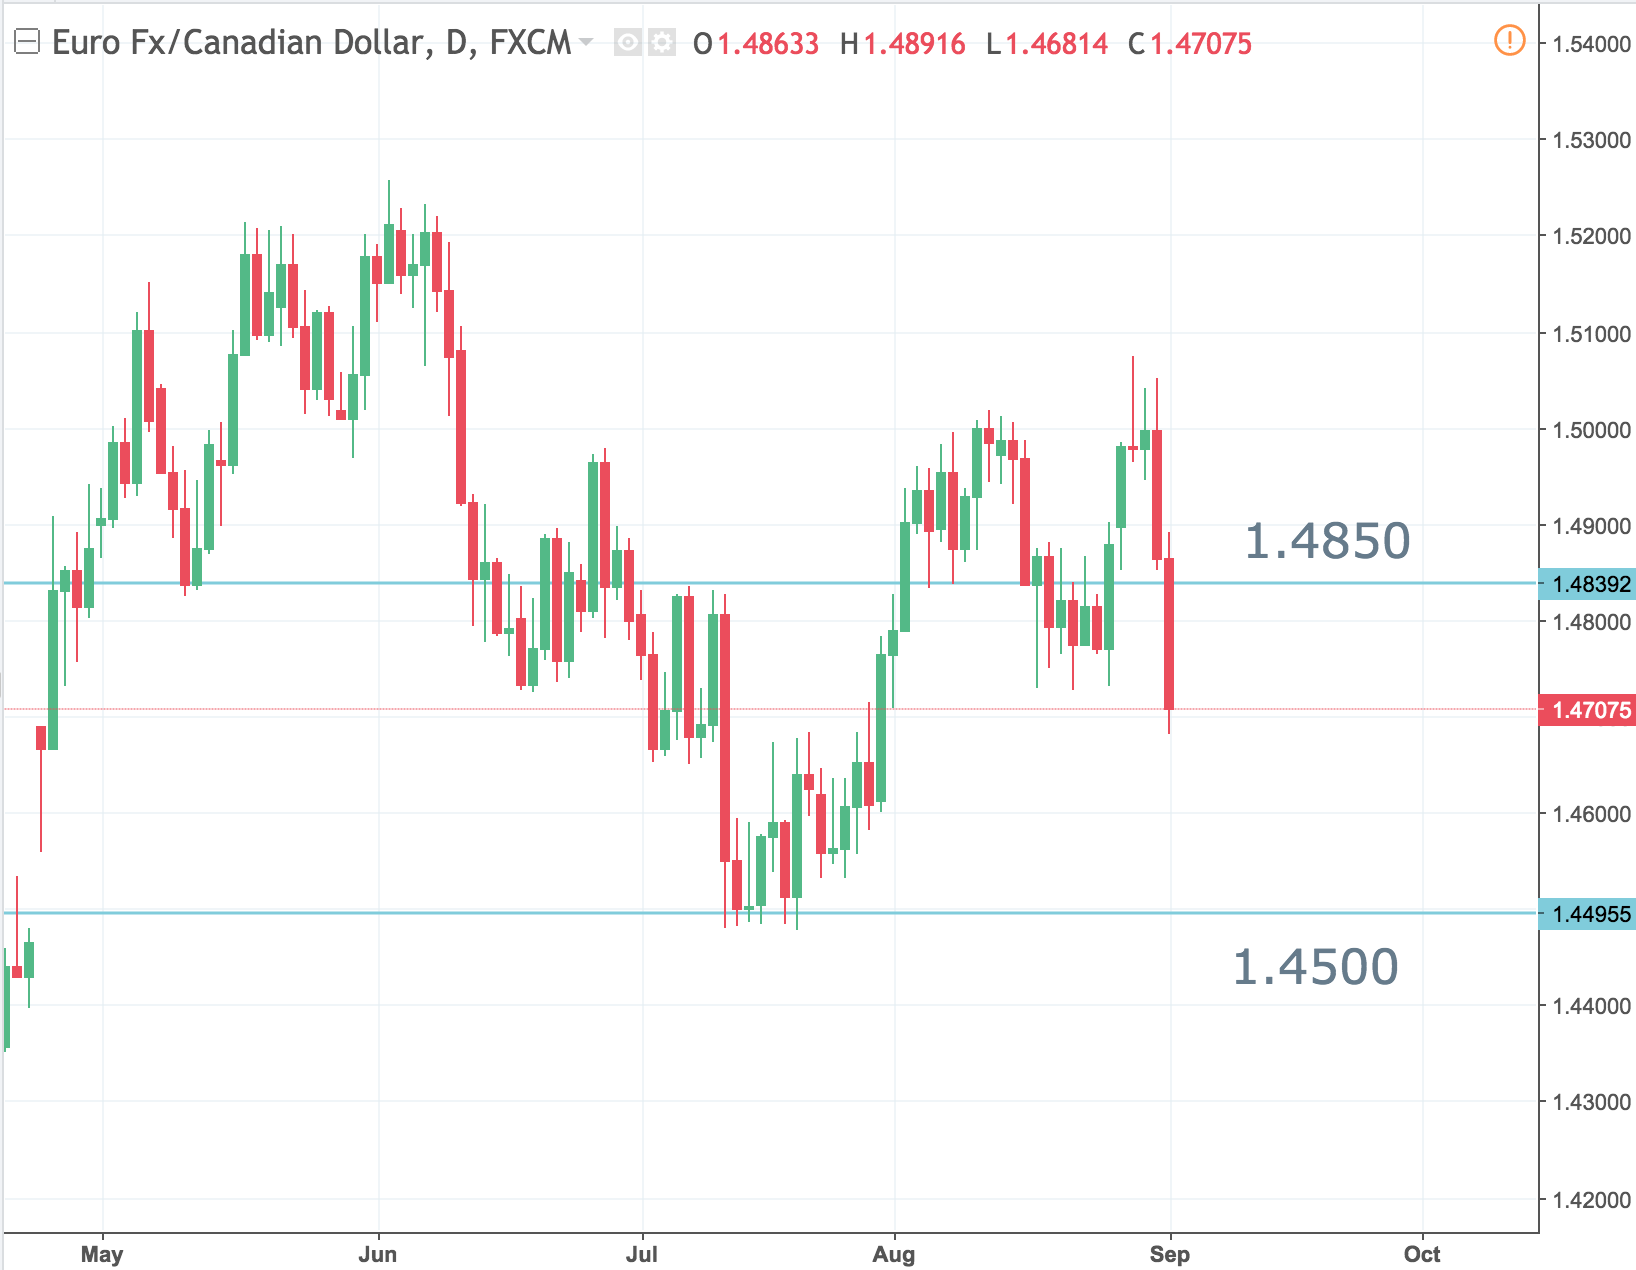 EUR/CAD Back to 1.45?